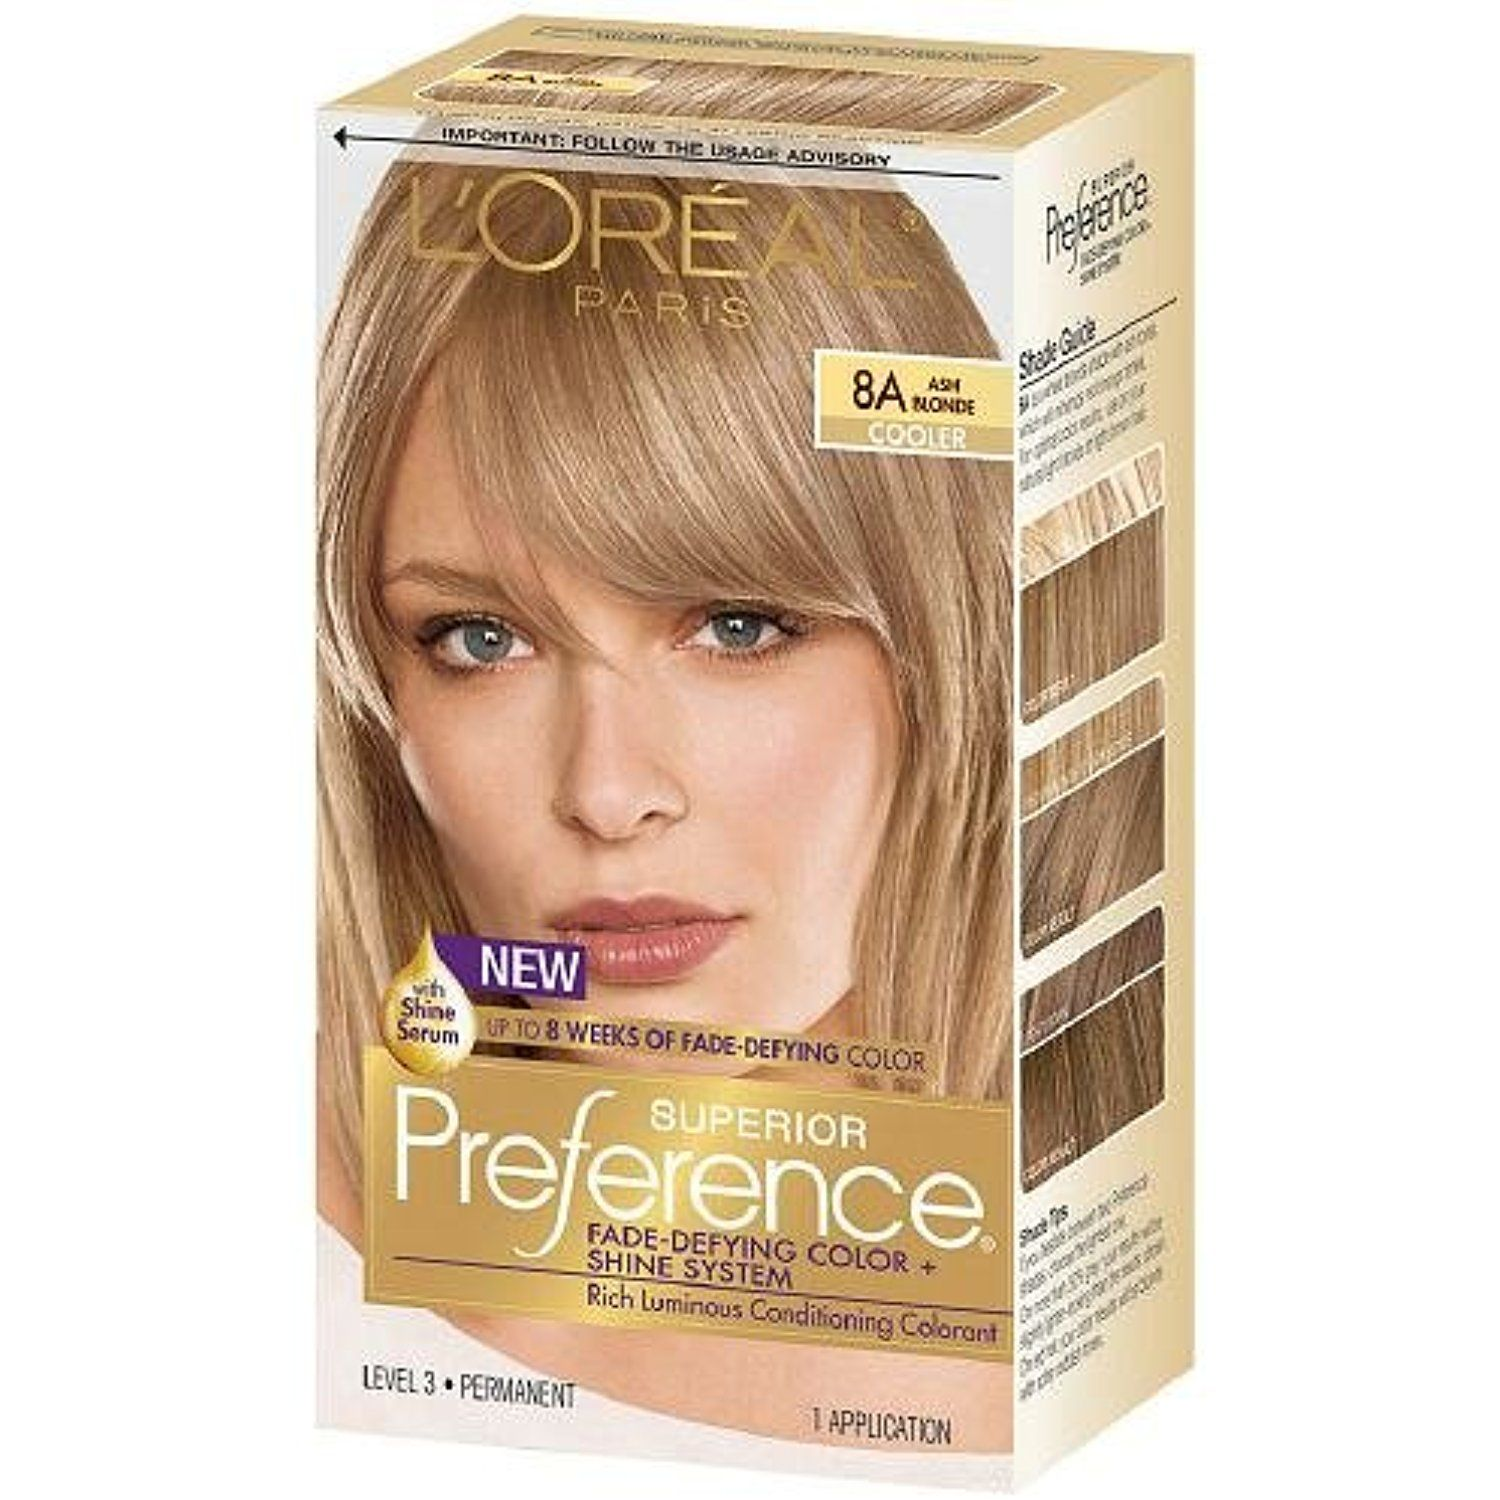 Unique How to Use Loreal Preference Hair Color